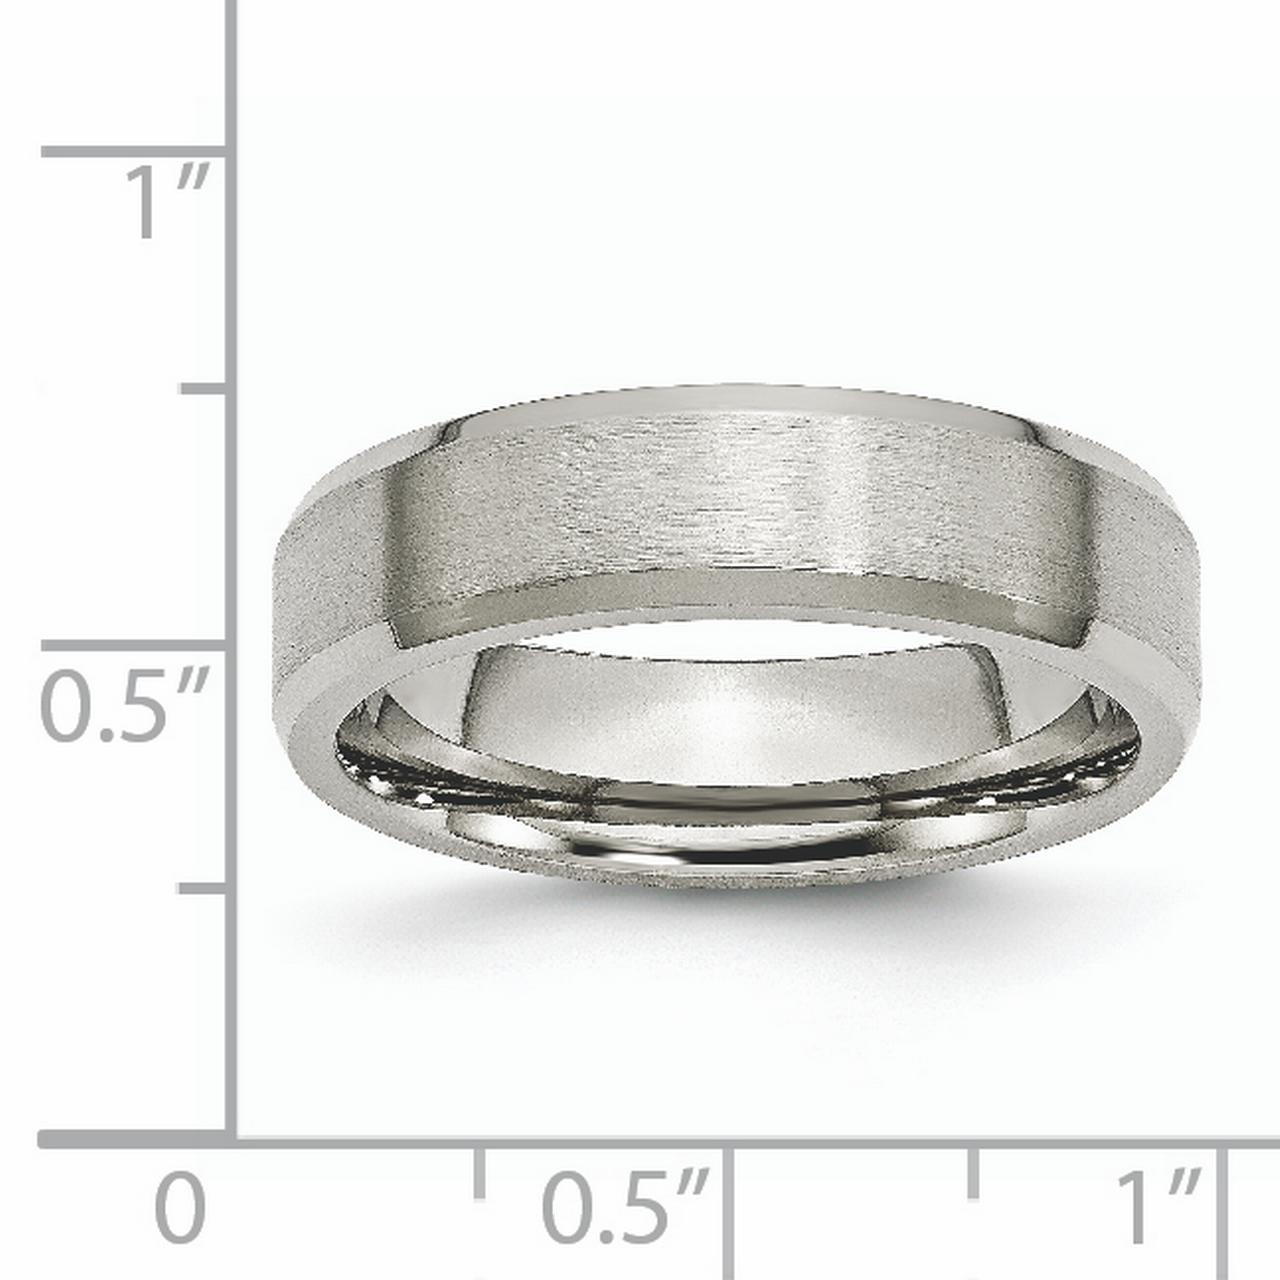 Titanium Beveled Edge 6mm Brushed Wedding Ring Band Size 13.50 Classic Flat W/edge Fashion Jewelry Gifts For Women For Her - image 3 of 7